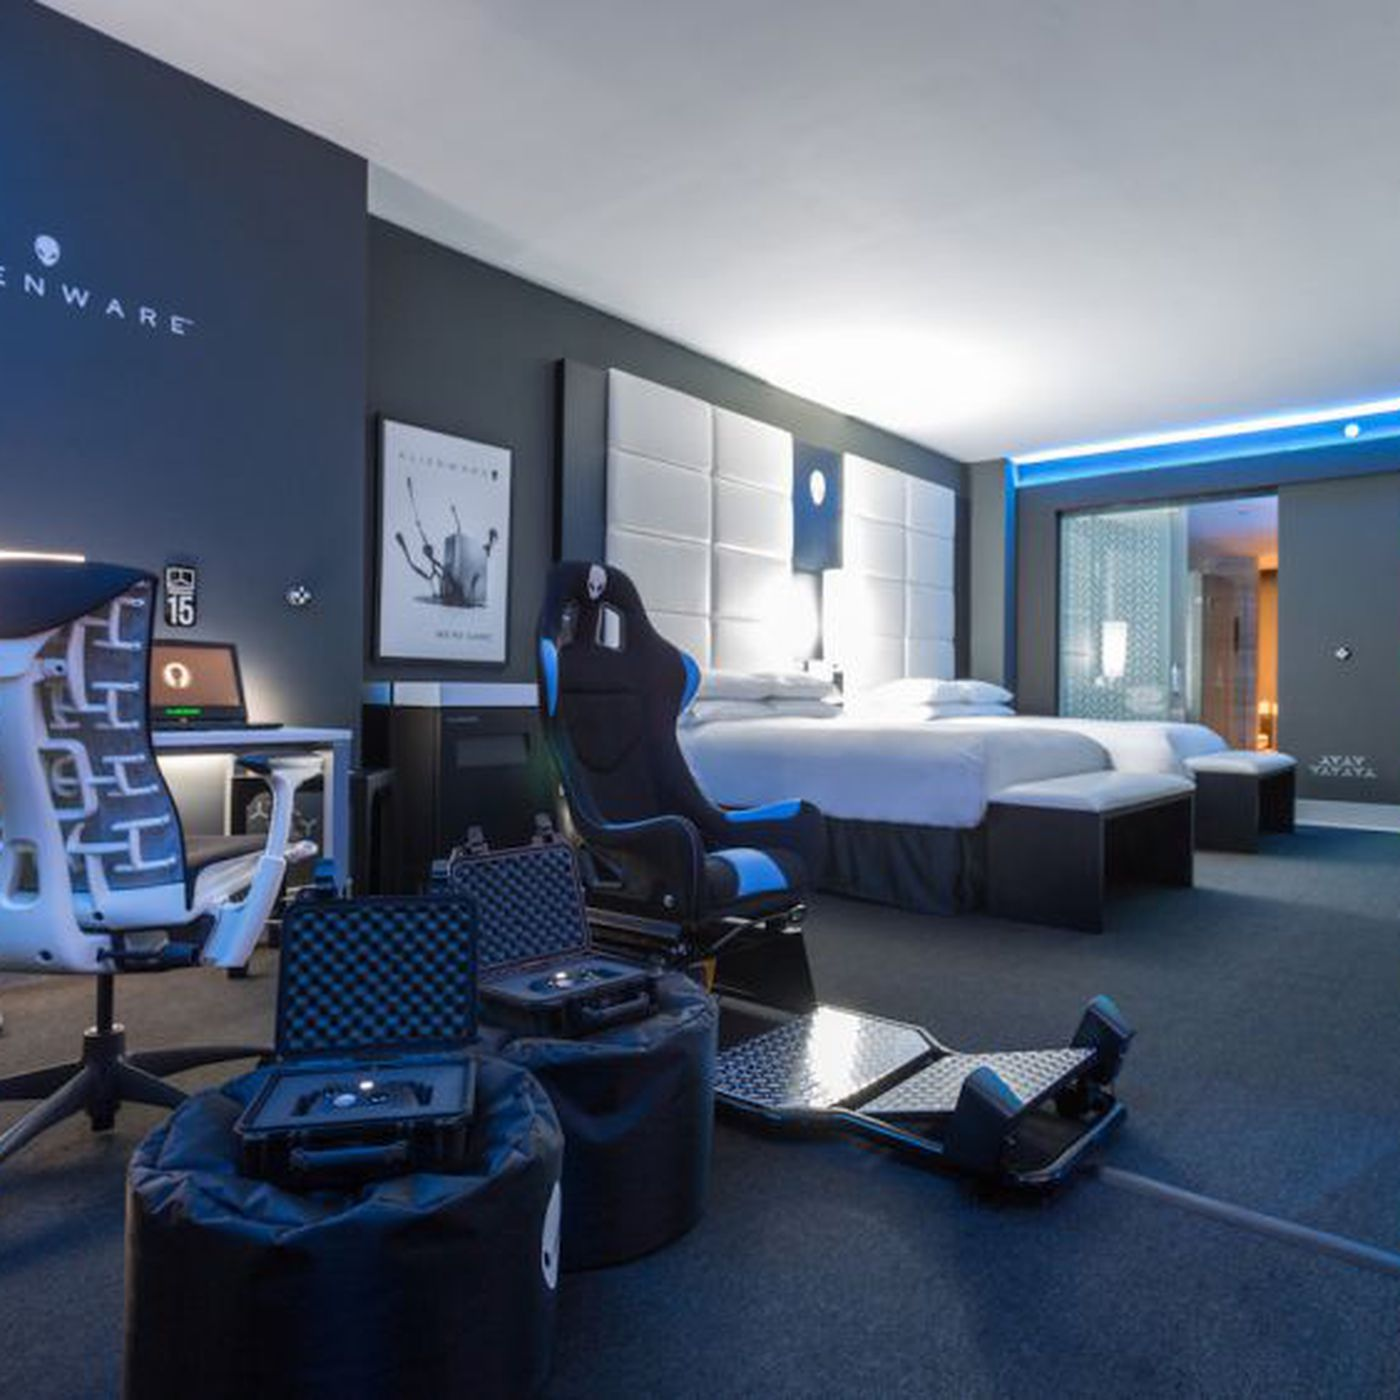 Alienware Built A Decadent Gaming Hotel Room At The Hilton Panama The Verge